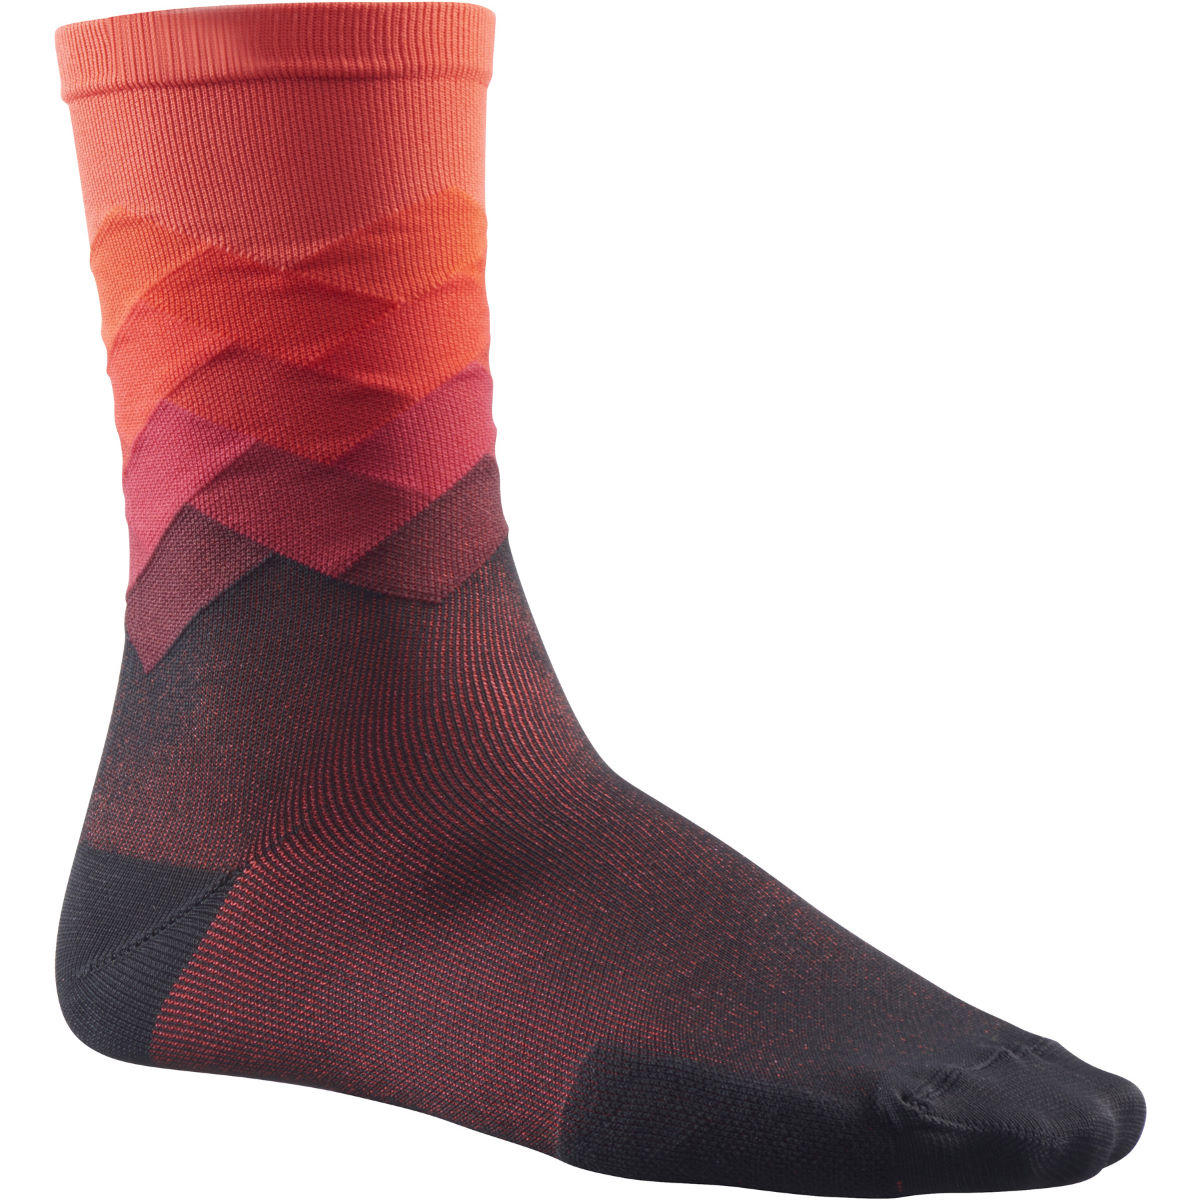 Chaussettes Mavic Cosmic Graphic - 35-38 Fiery Red Chaussettes vélo